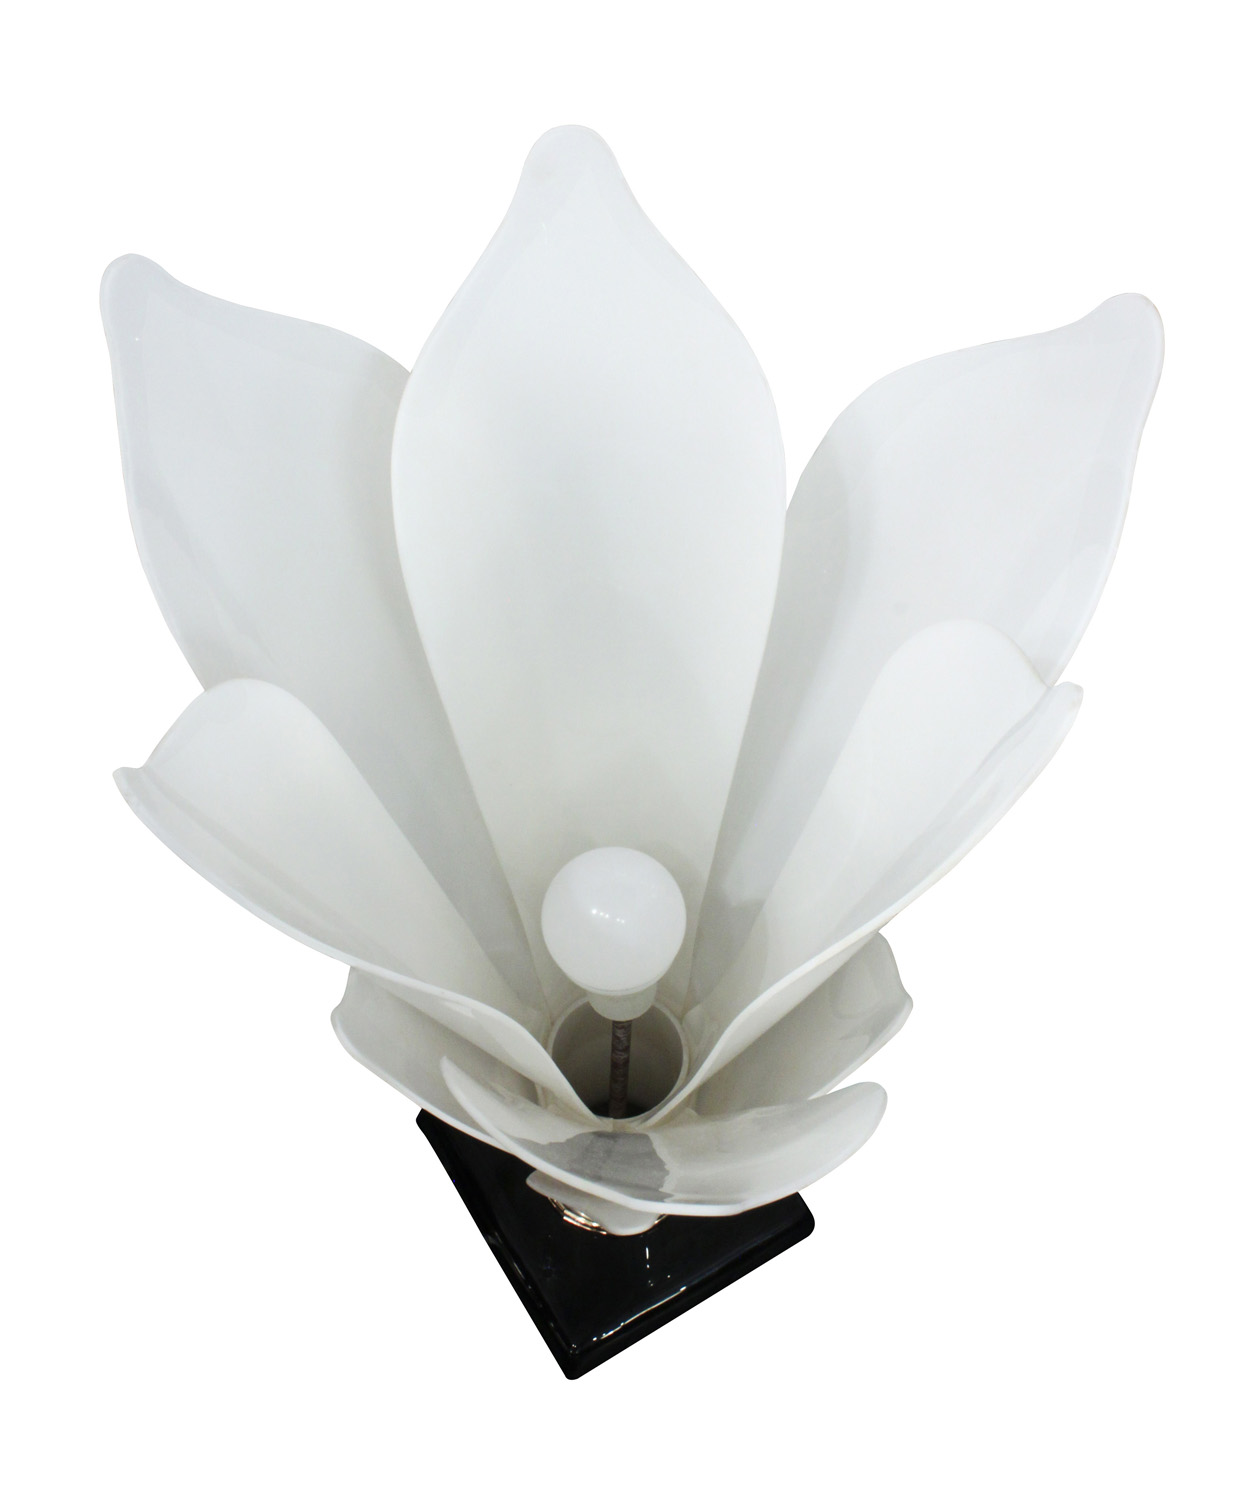 Rougier 30 white petals flower tablelamp220 detail6 hires.jpg